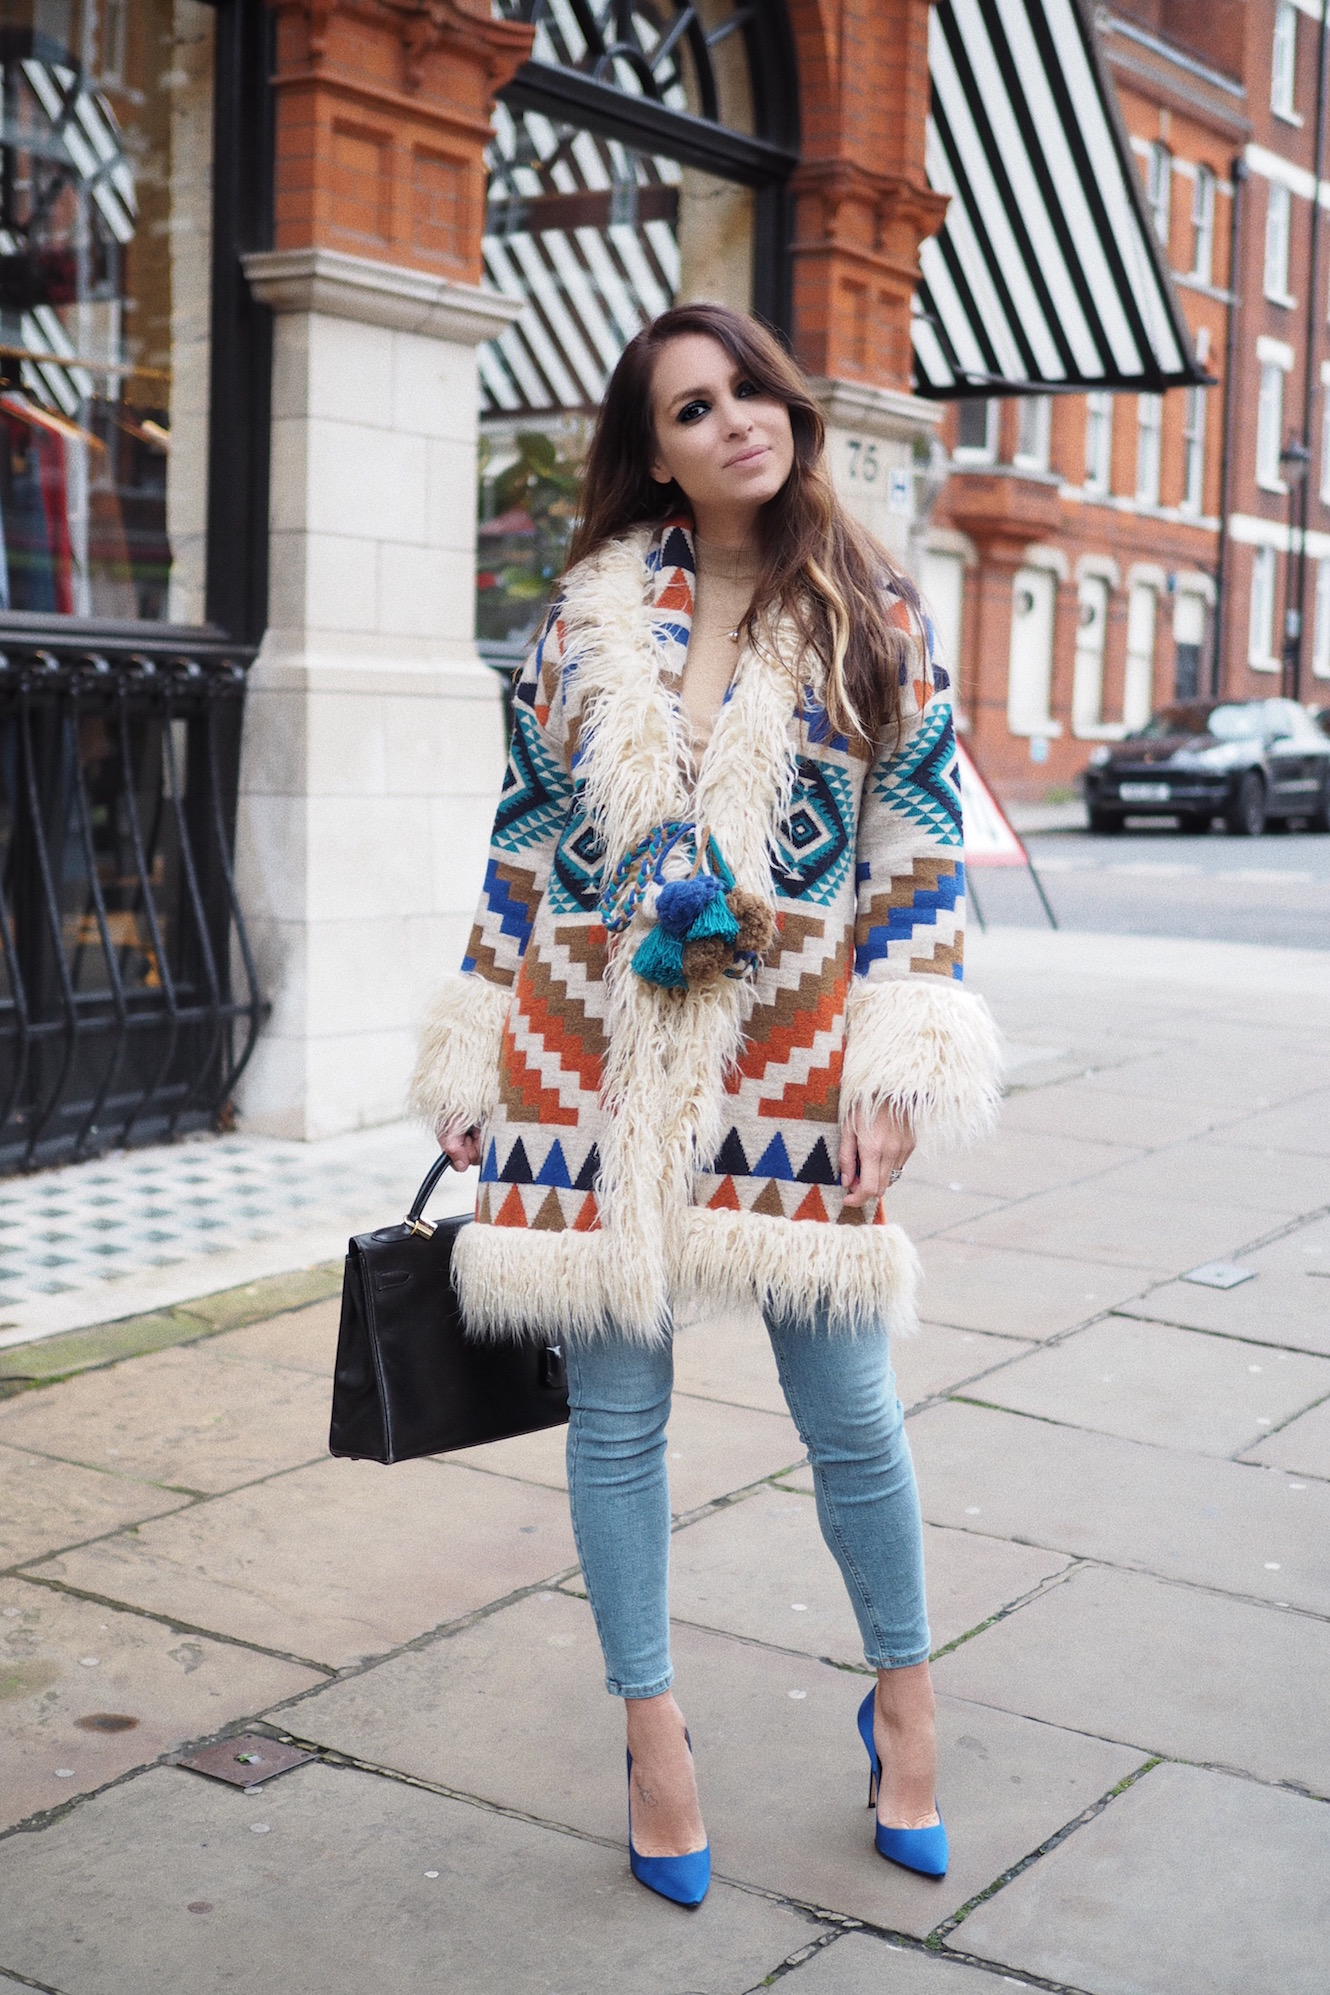 london street style fashion bloggers uk